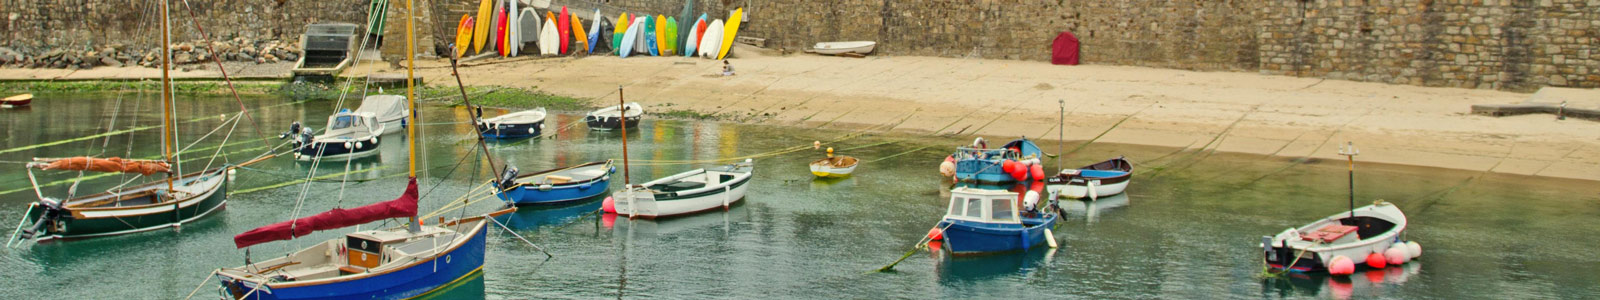 Things to do in Cornwall: Visit Mousehole